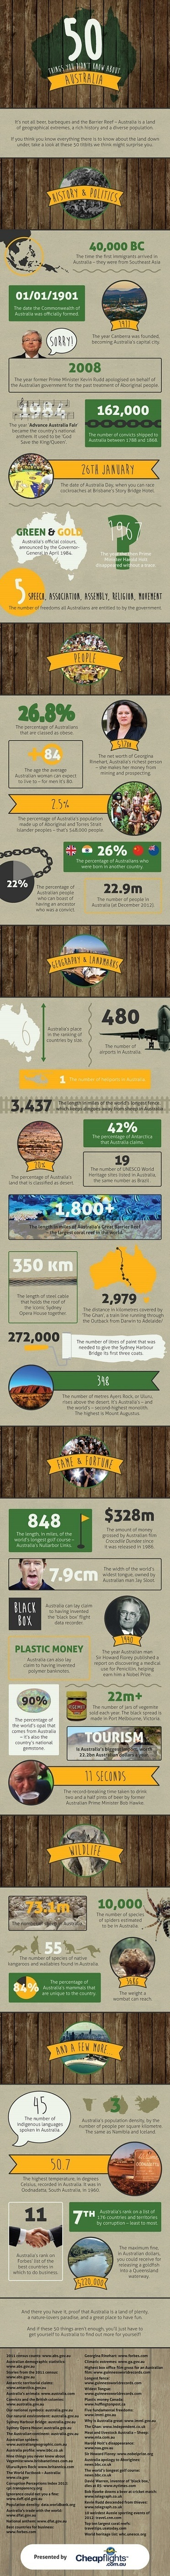 50 Things You Didn't Know About Australia Infographic   Australia and Oceania, Europe, and Africa   Scoop.it